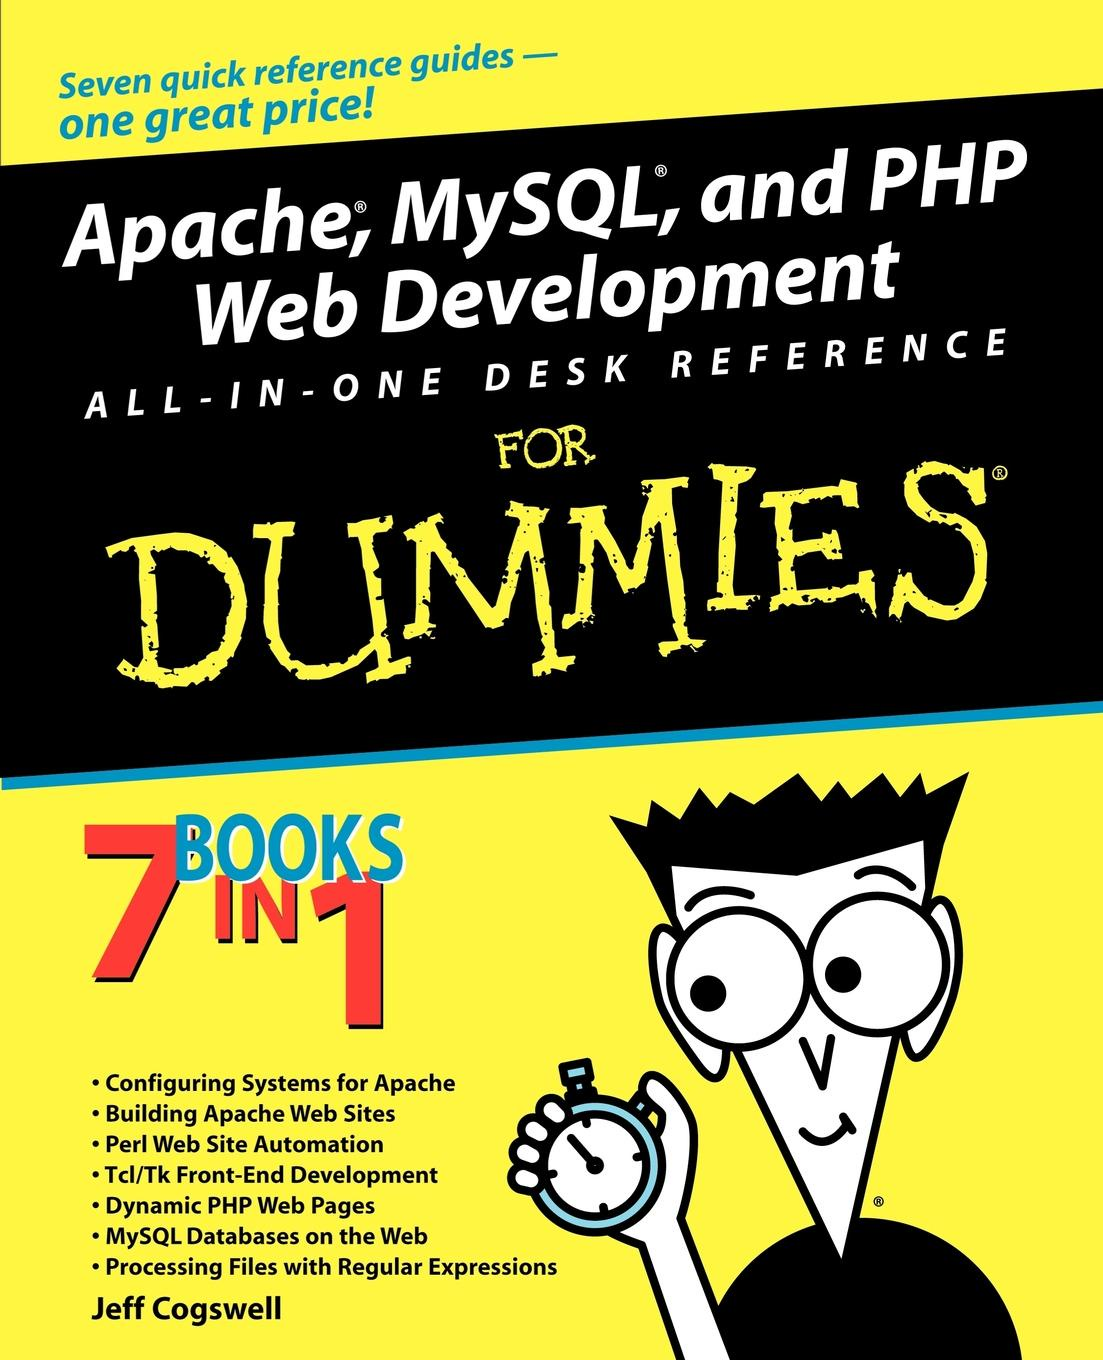 Jeffrey Cogswell Apache, MySQL, and PHP Web Development All-In-One Desk Reference for Dummies david byrnes autocad and autocad lt all in one desk reference for dummies